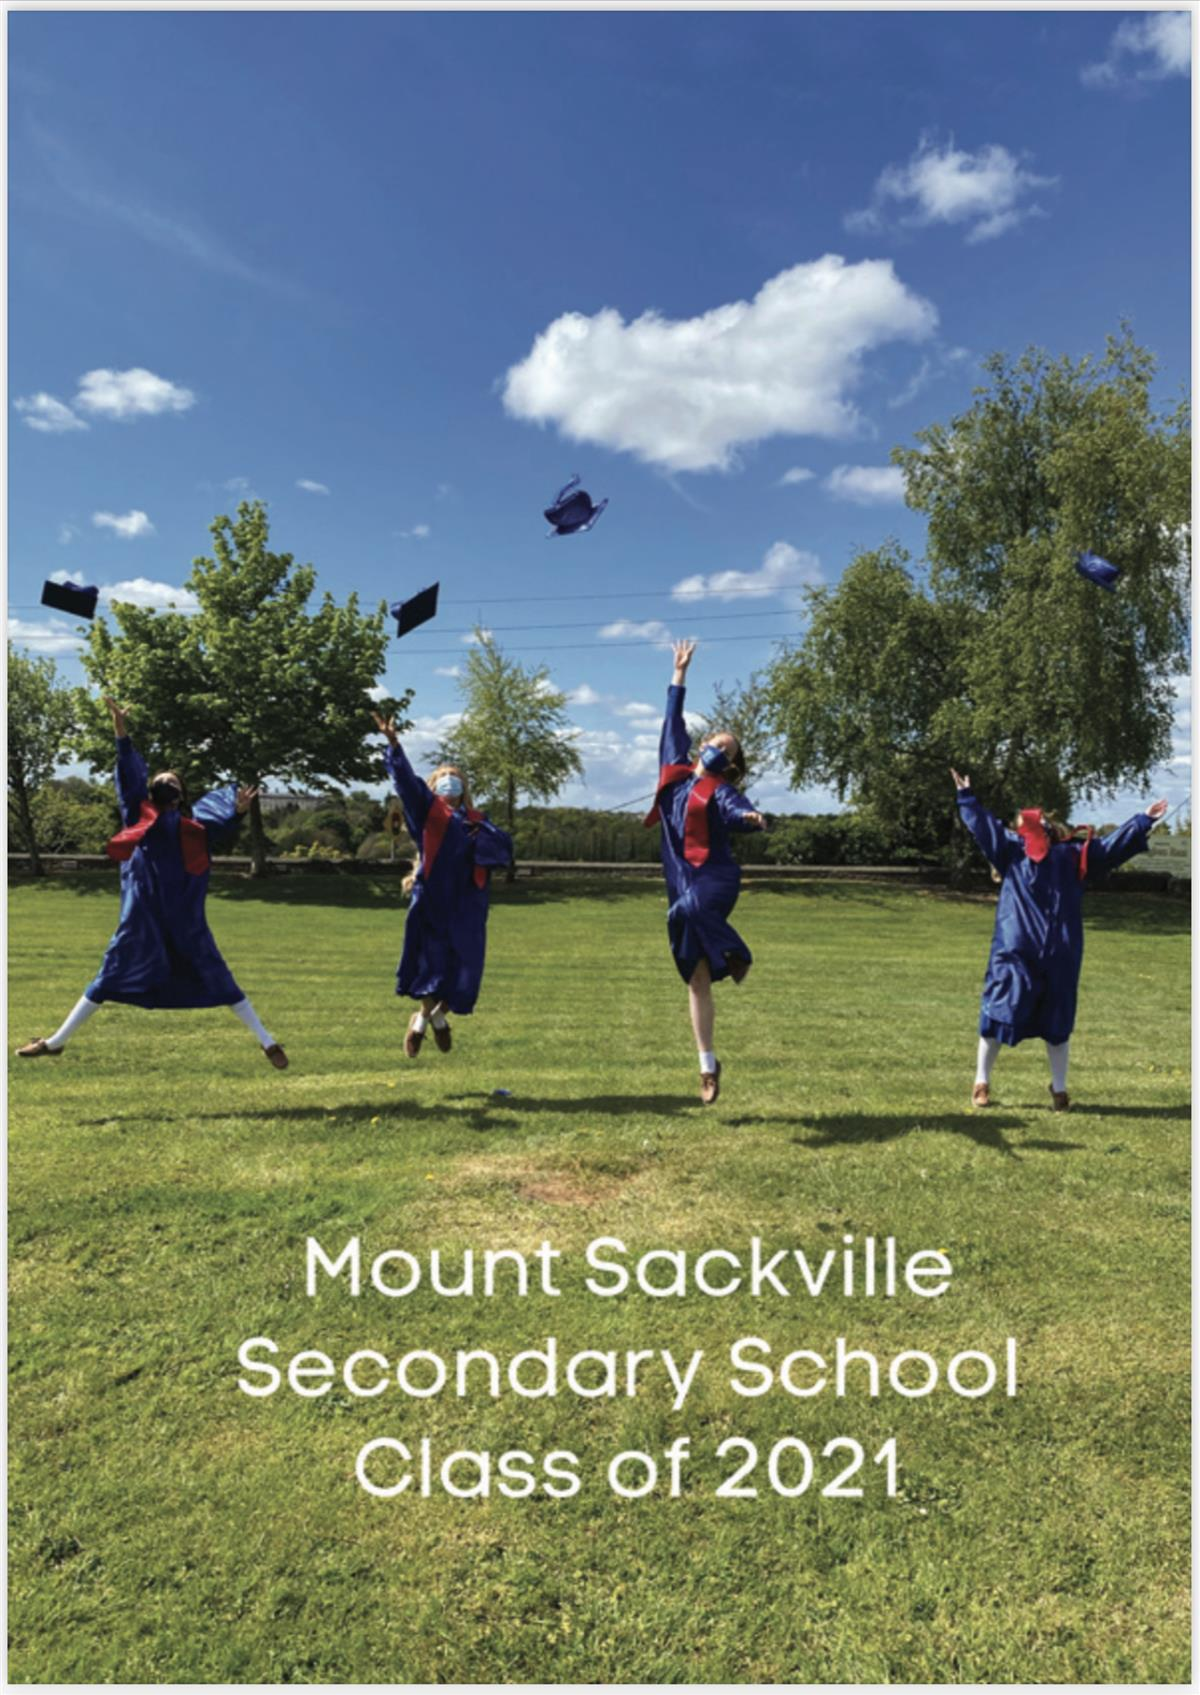 Graduating Class of 2021 commemorate with a Memory Book